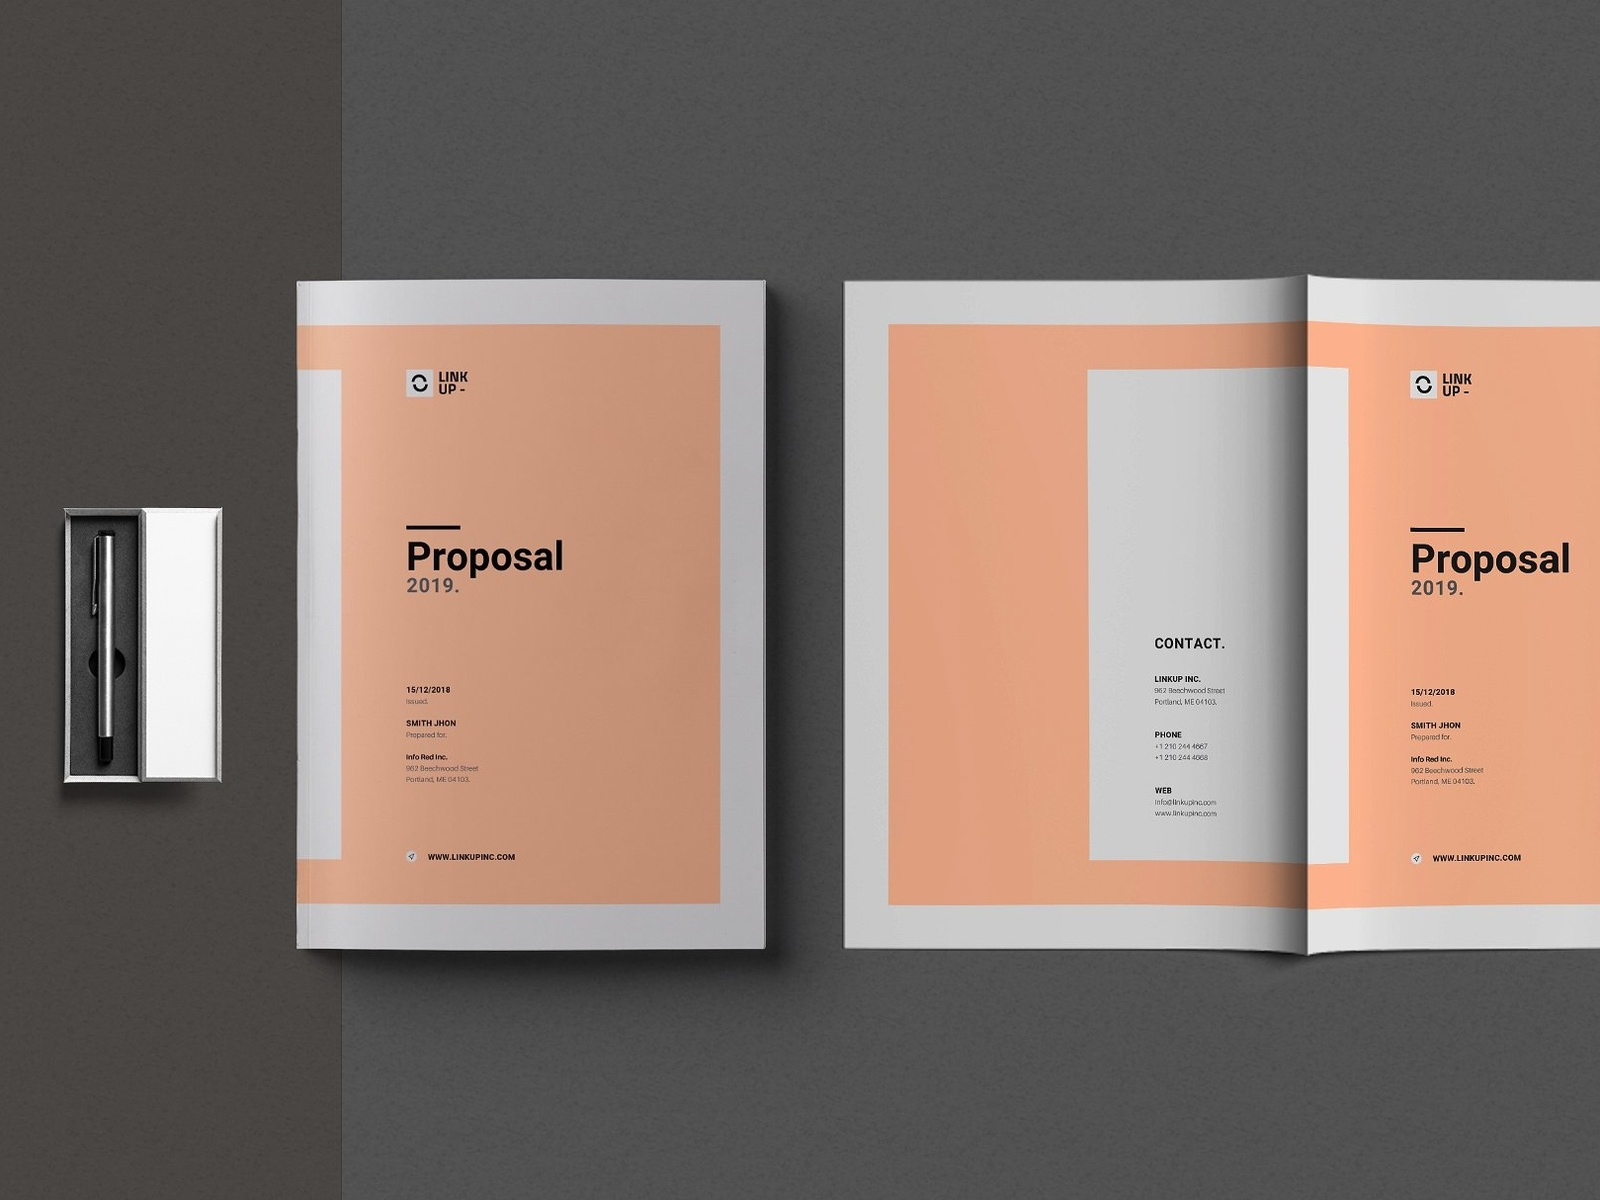 Business proposal template by brochure design dribbble httpscreativemarketdesign park2908747 business proposal template uaurom cheaphphosting Images